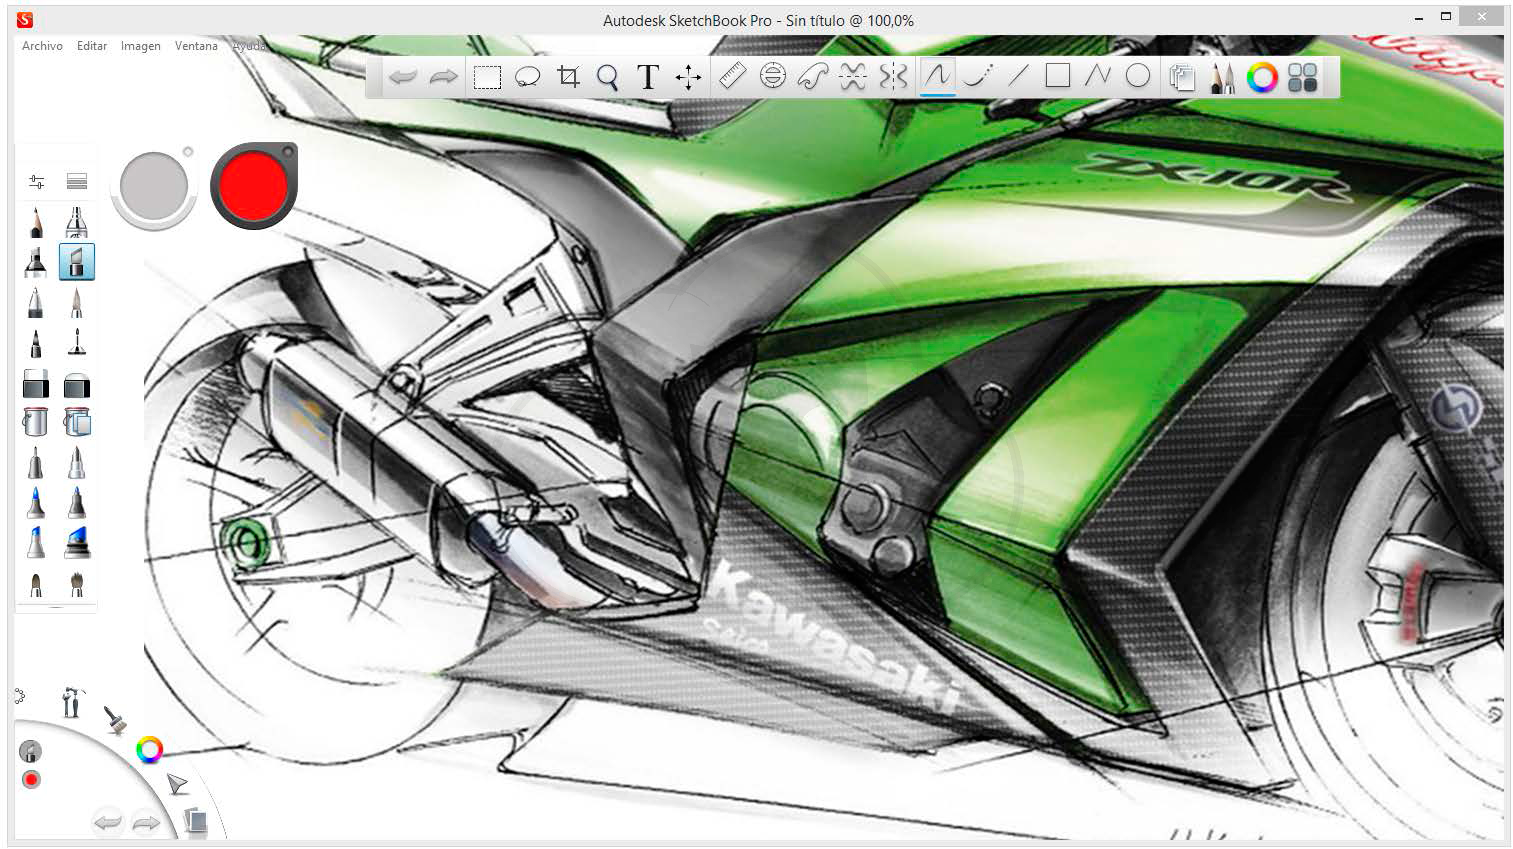 Direct Autodesk Sketchbook Pro 3 2 Team Os Your Only